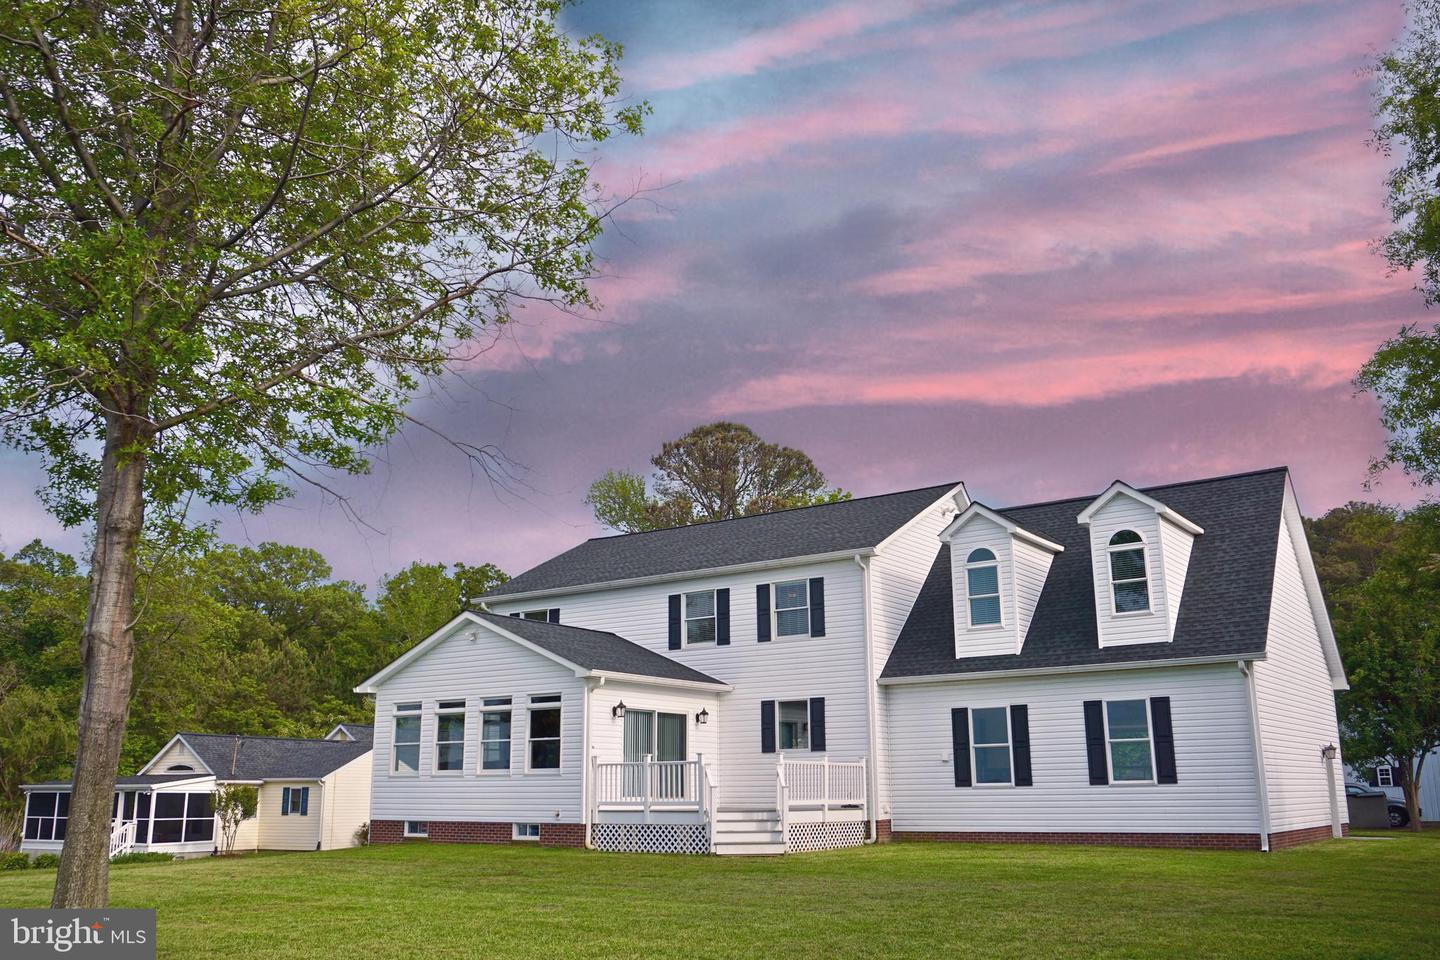 Single Family Homes for Sale at Hague, Virginia 22469 United States